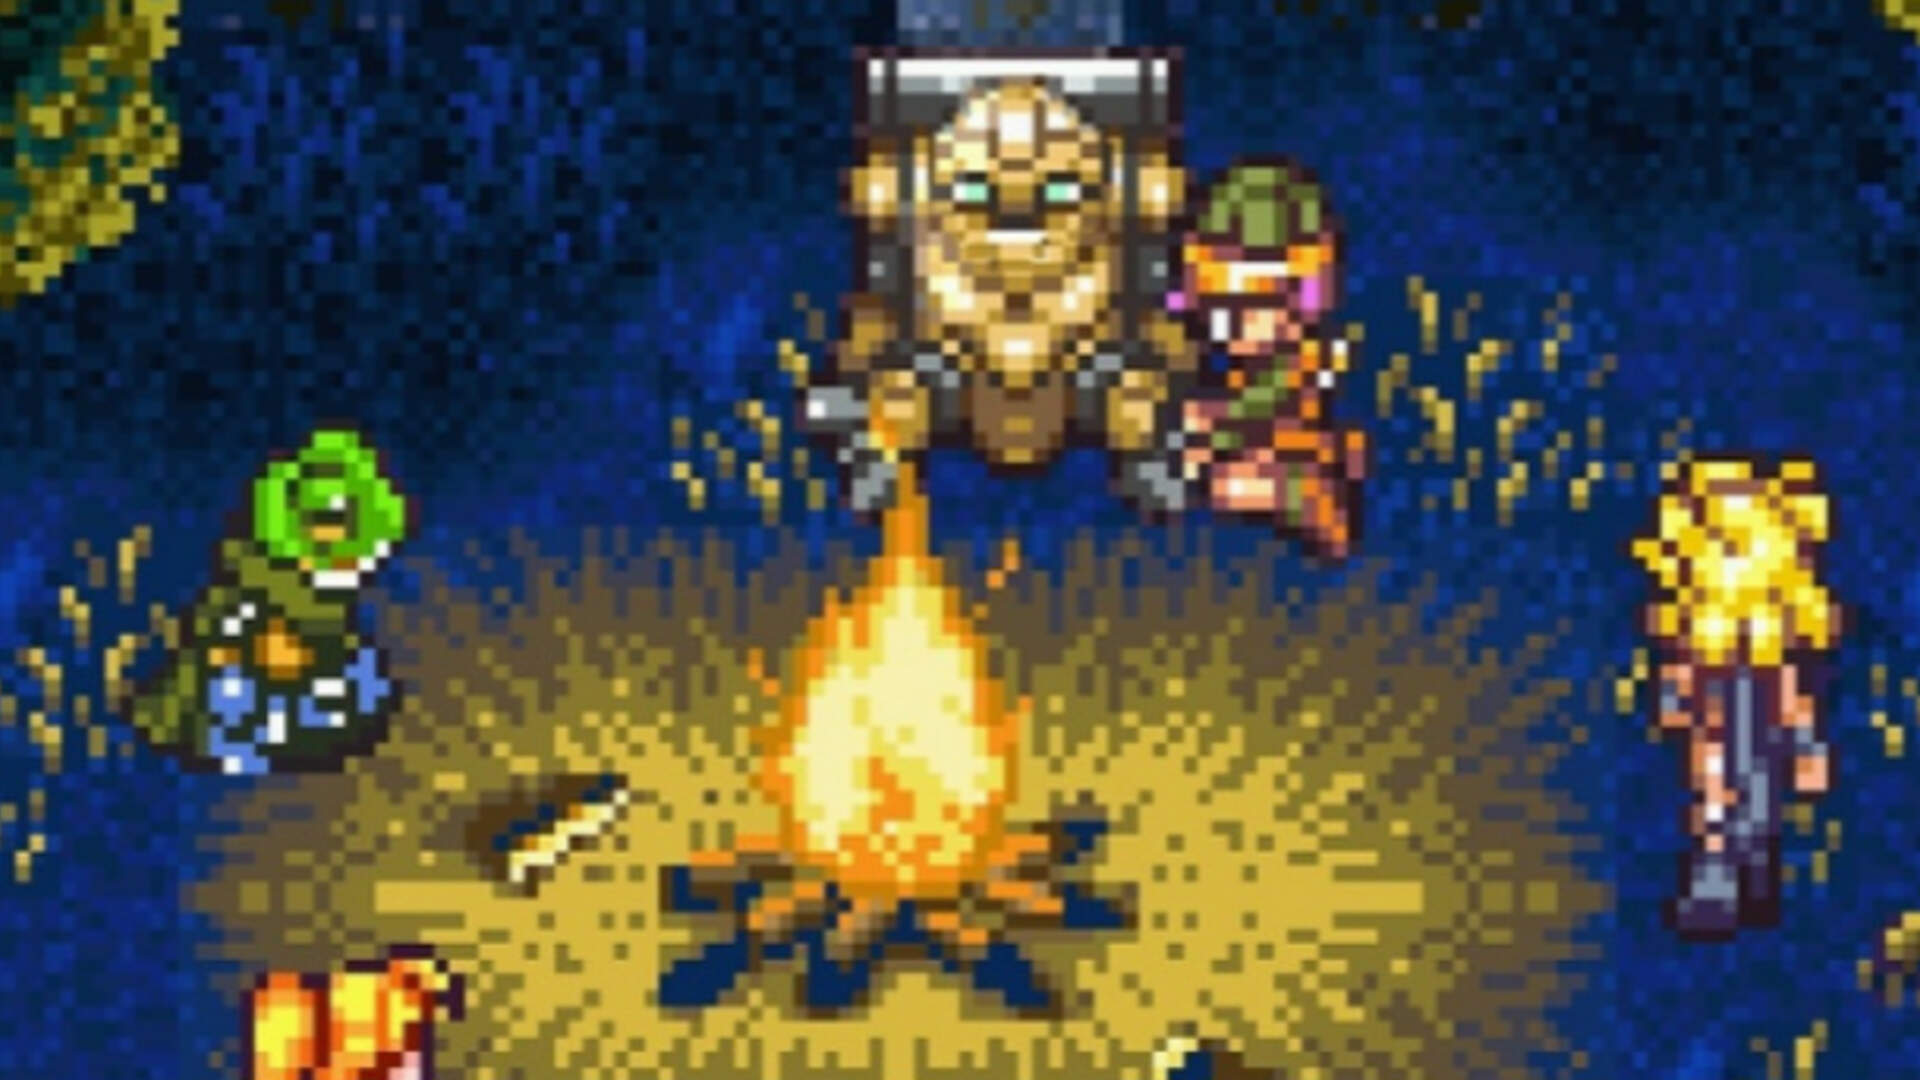 From Chrono Trigger to Dark Souls Remastered: The Evolution of the Bonfire in Games